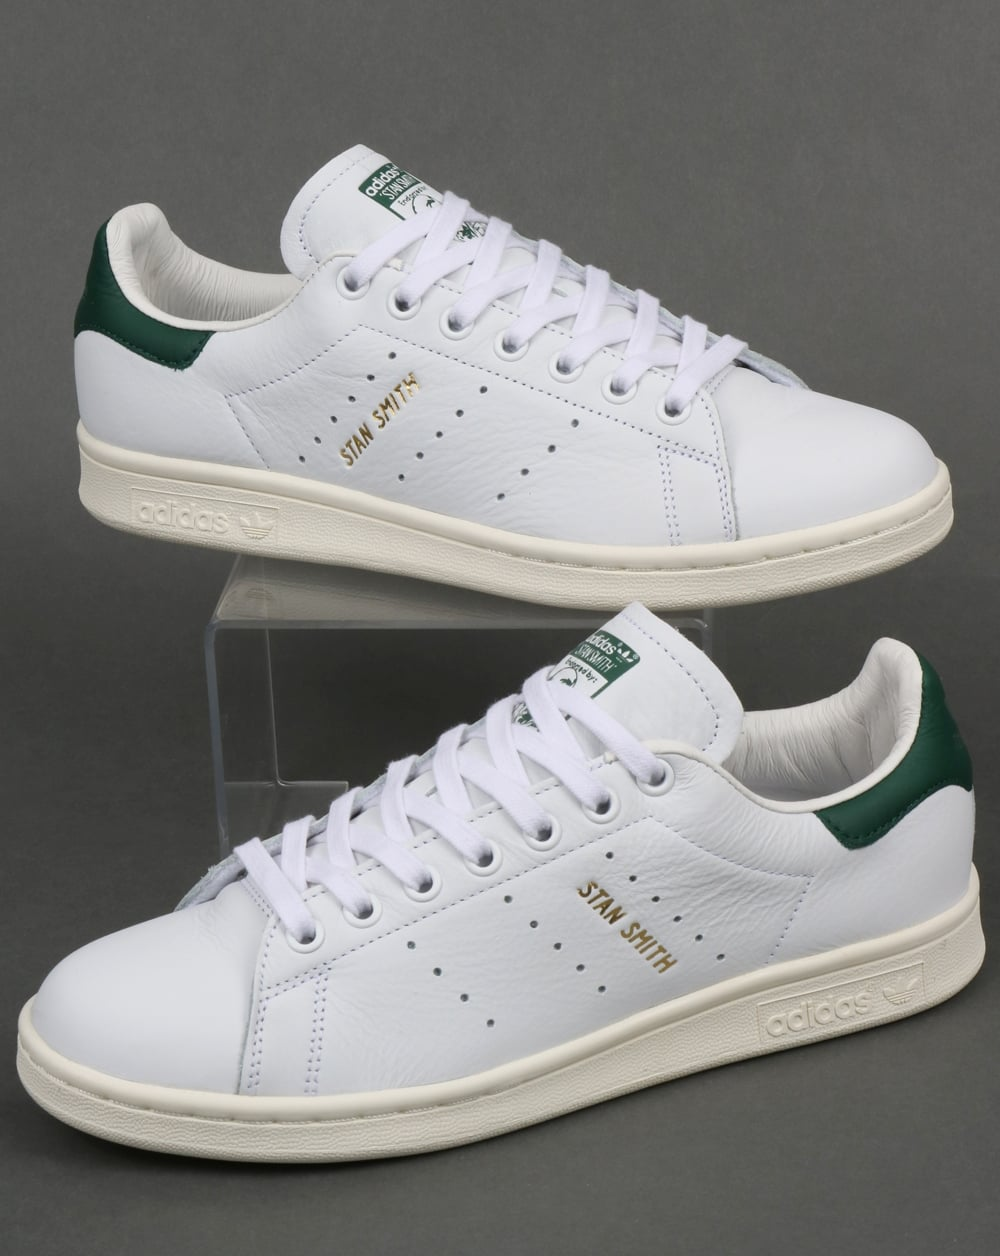 detailed look e7daf 69c52 Adidas Stan Smith Trainers White/Collegiate Green